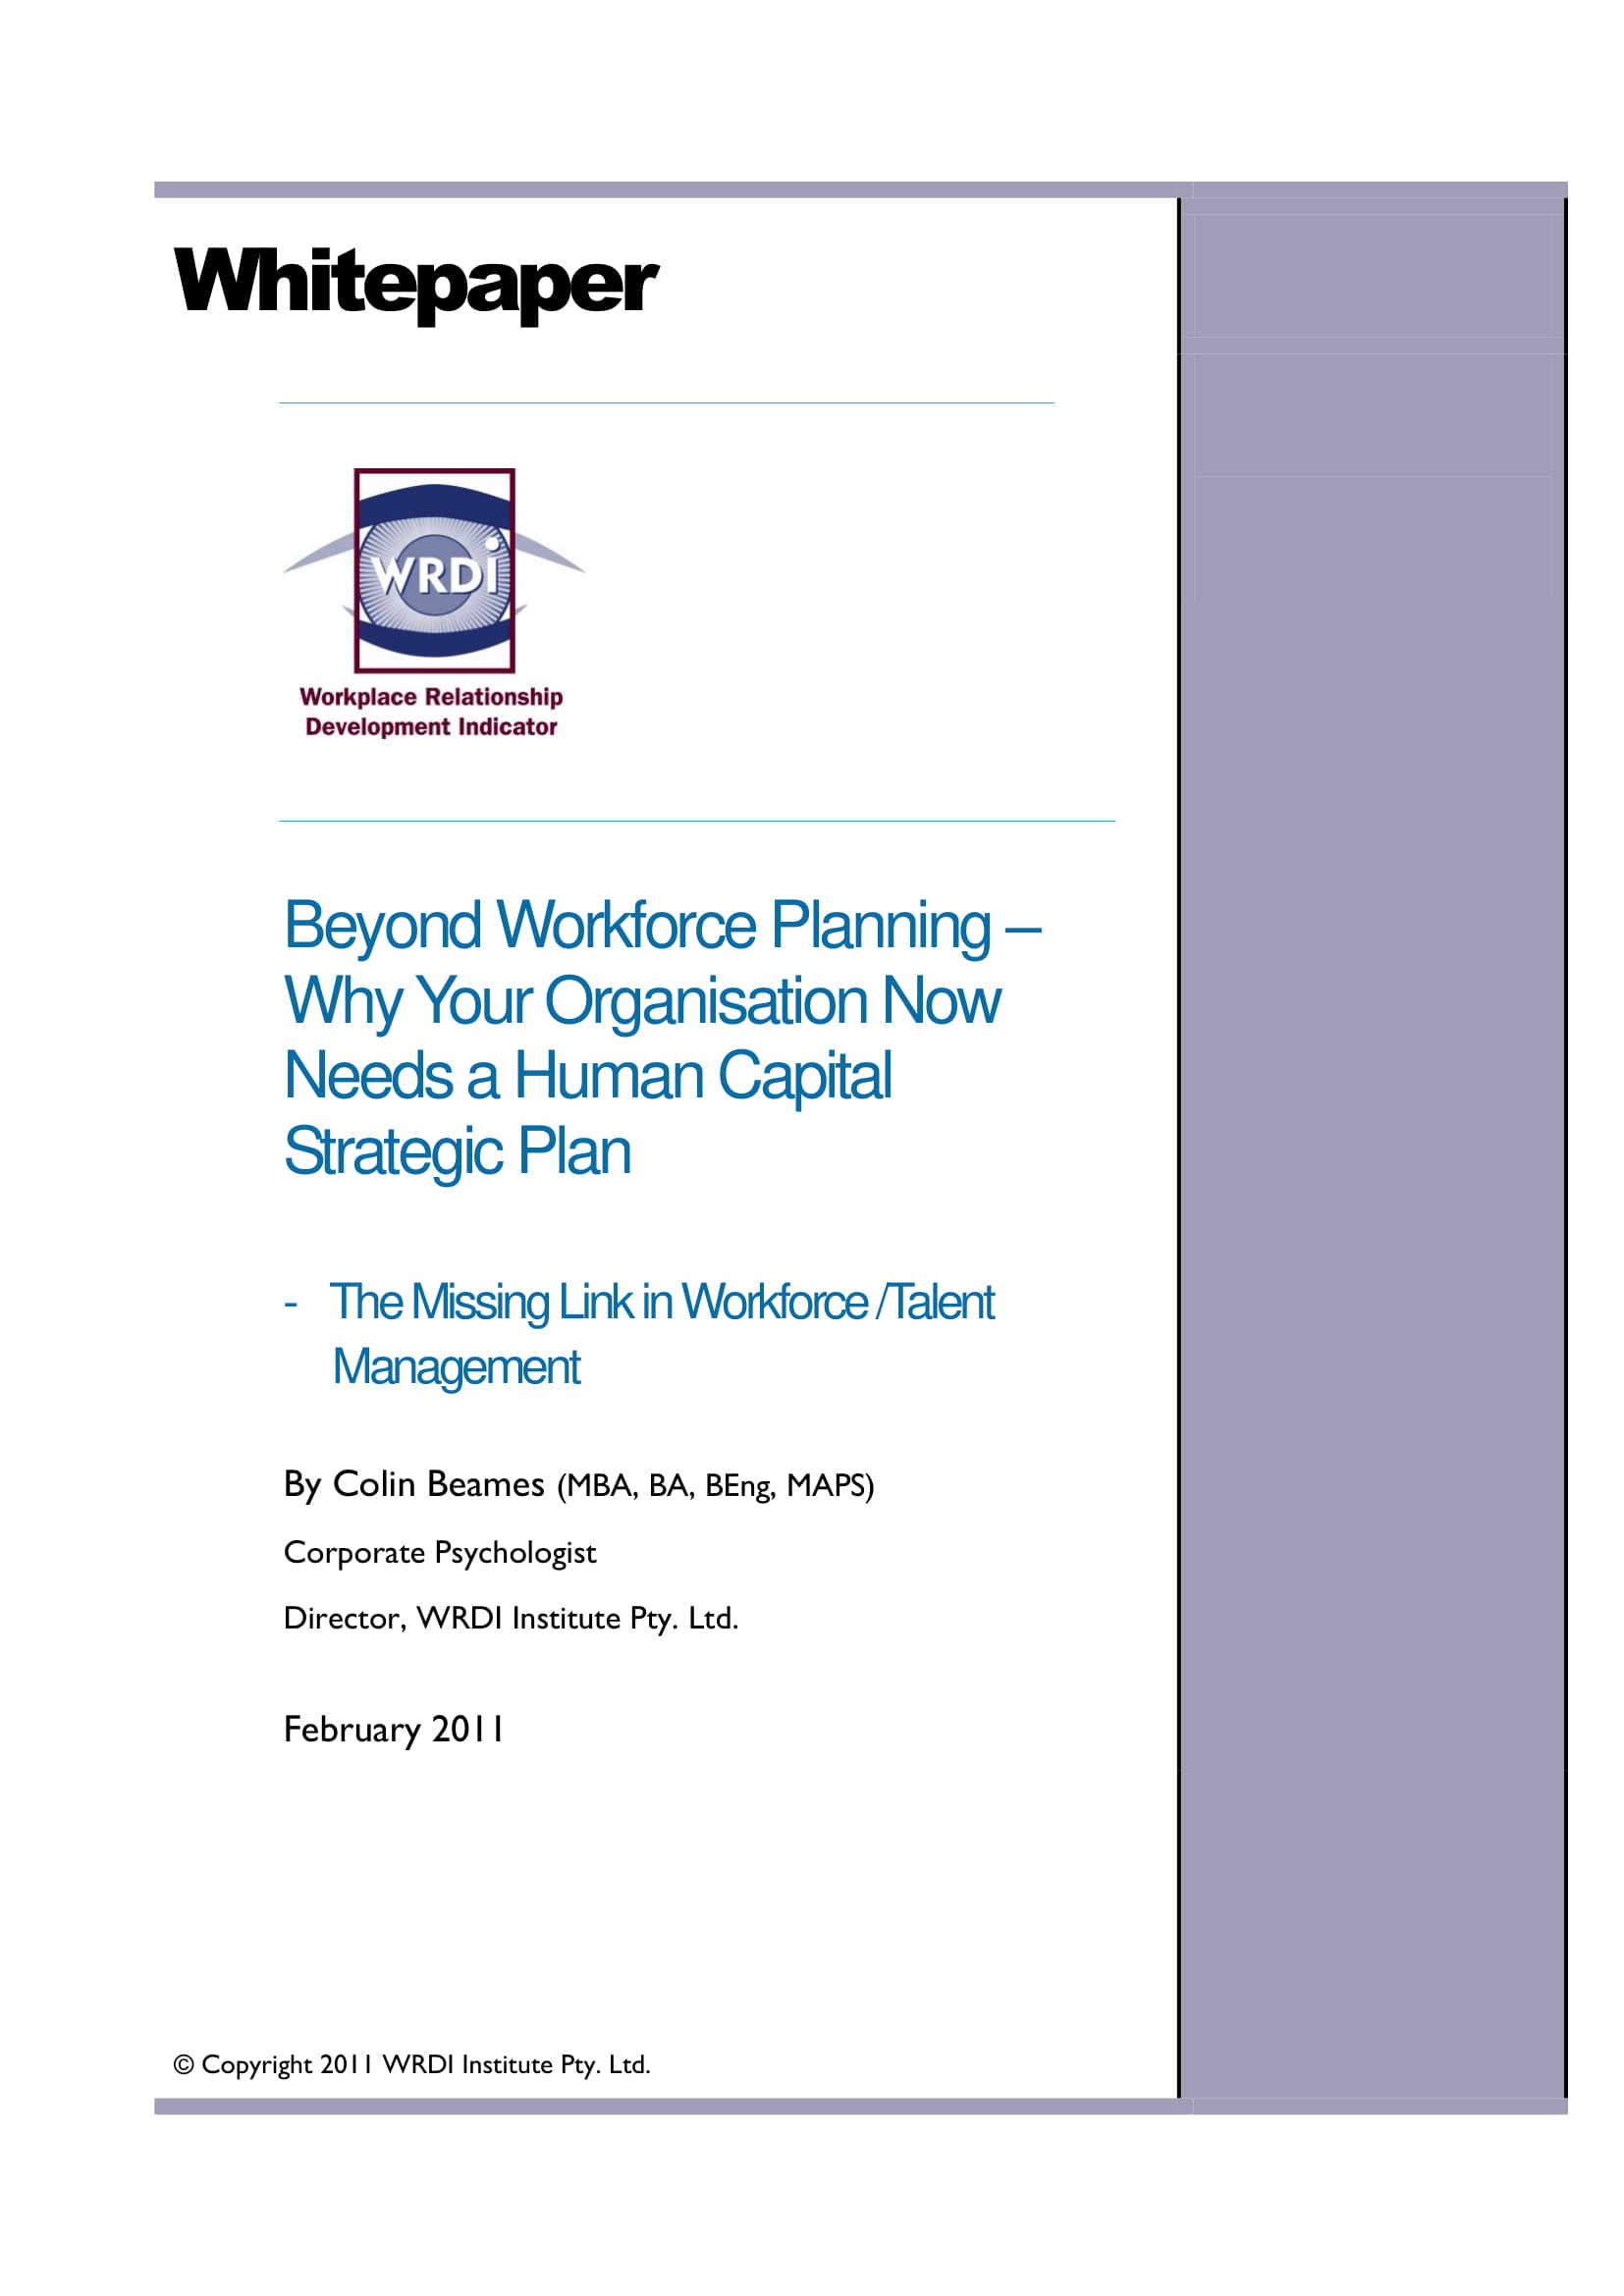 Human capital strategic plan template images for Human capital strategic plan template